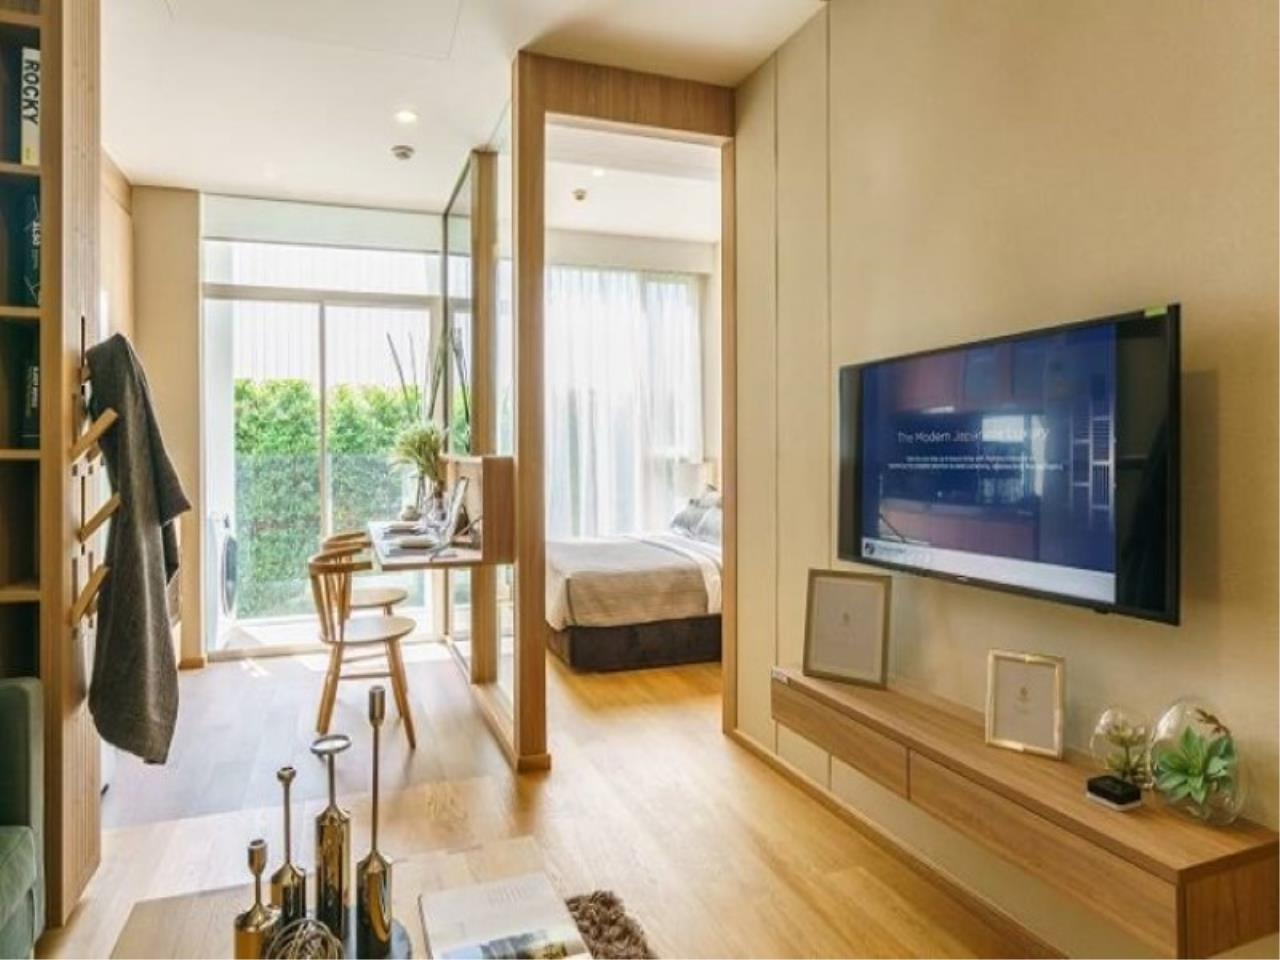 Century21 Skylux Agency's Siamese Exclusive Sukhumvit 42 / Condo For Sale / 1 Bedroom / 33.67 SQM / BTS Ekkamai / Bangkok 8